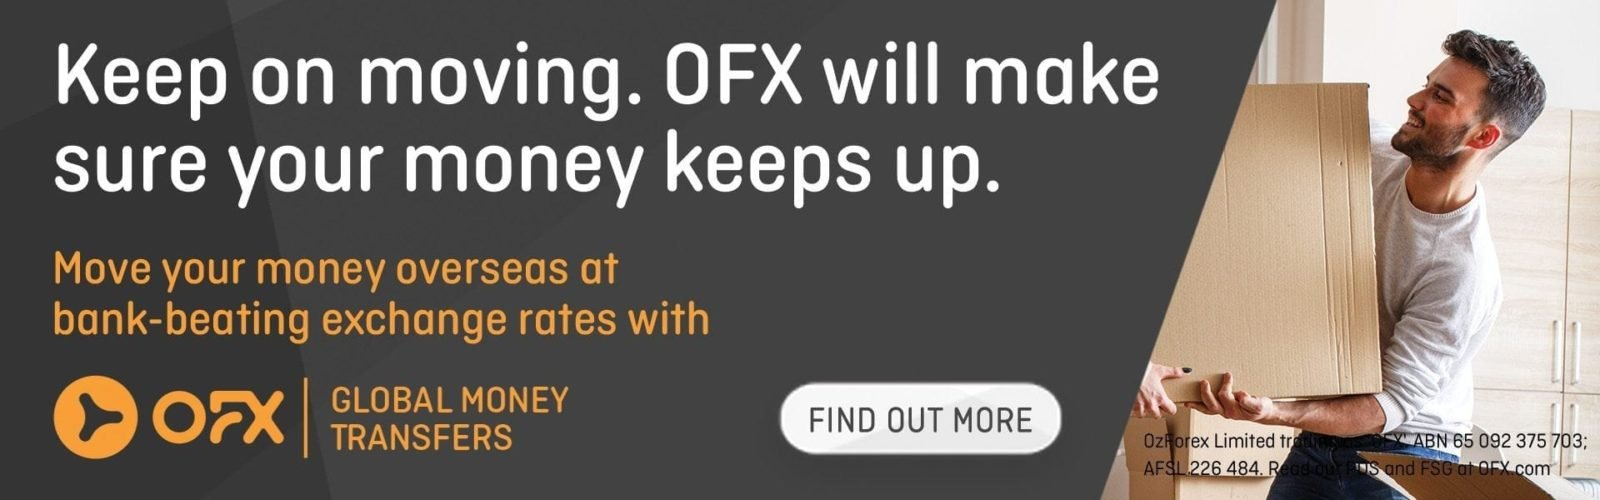 OFX Keep on moving your money